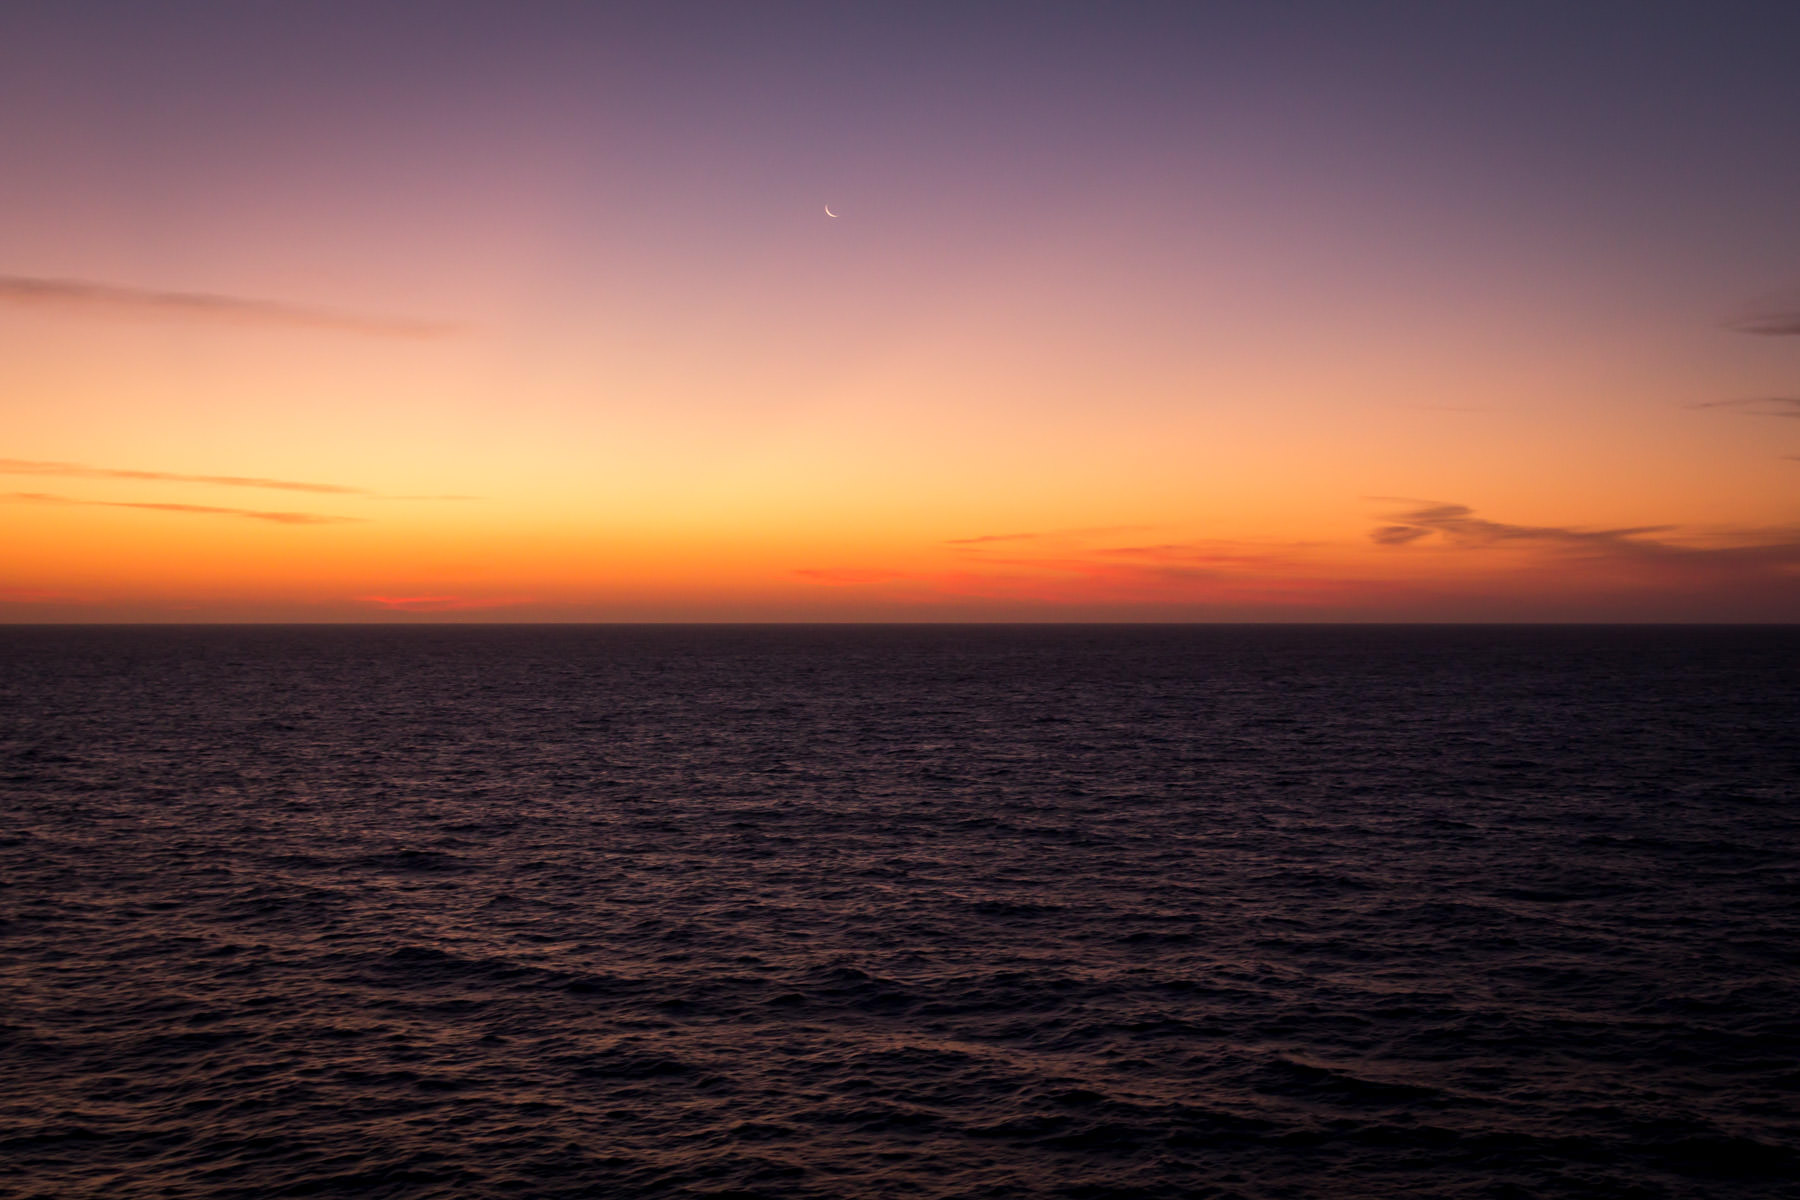 The first light of the sun begins to creep over the horizon somewhere in the Gulf of Mexico.